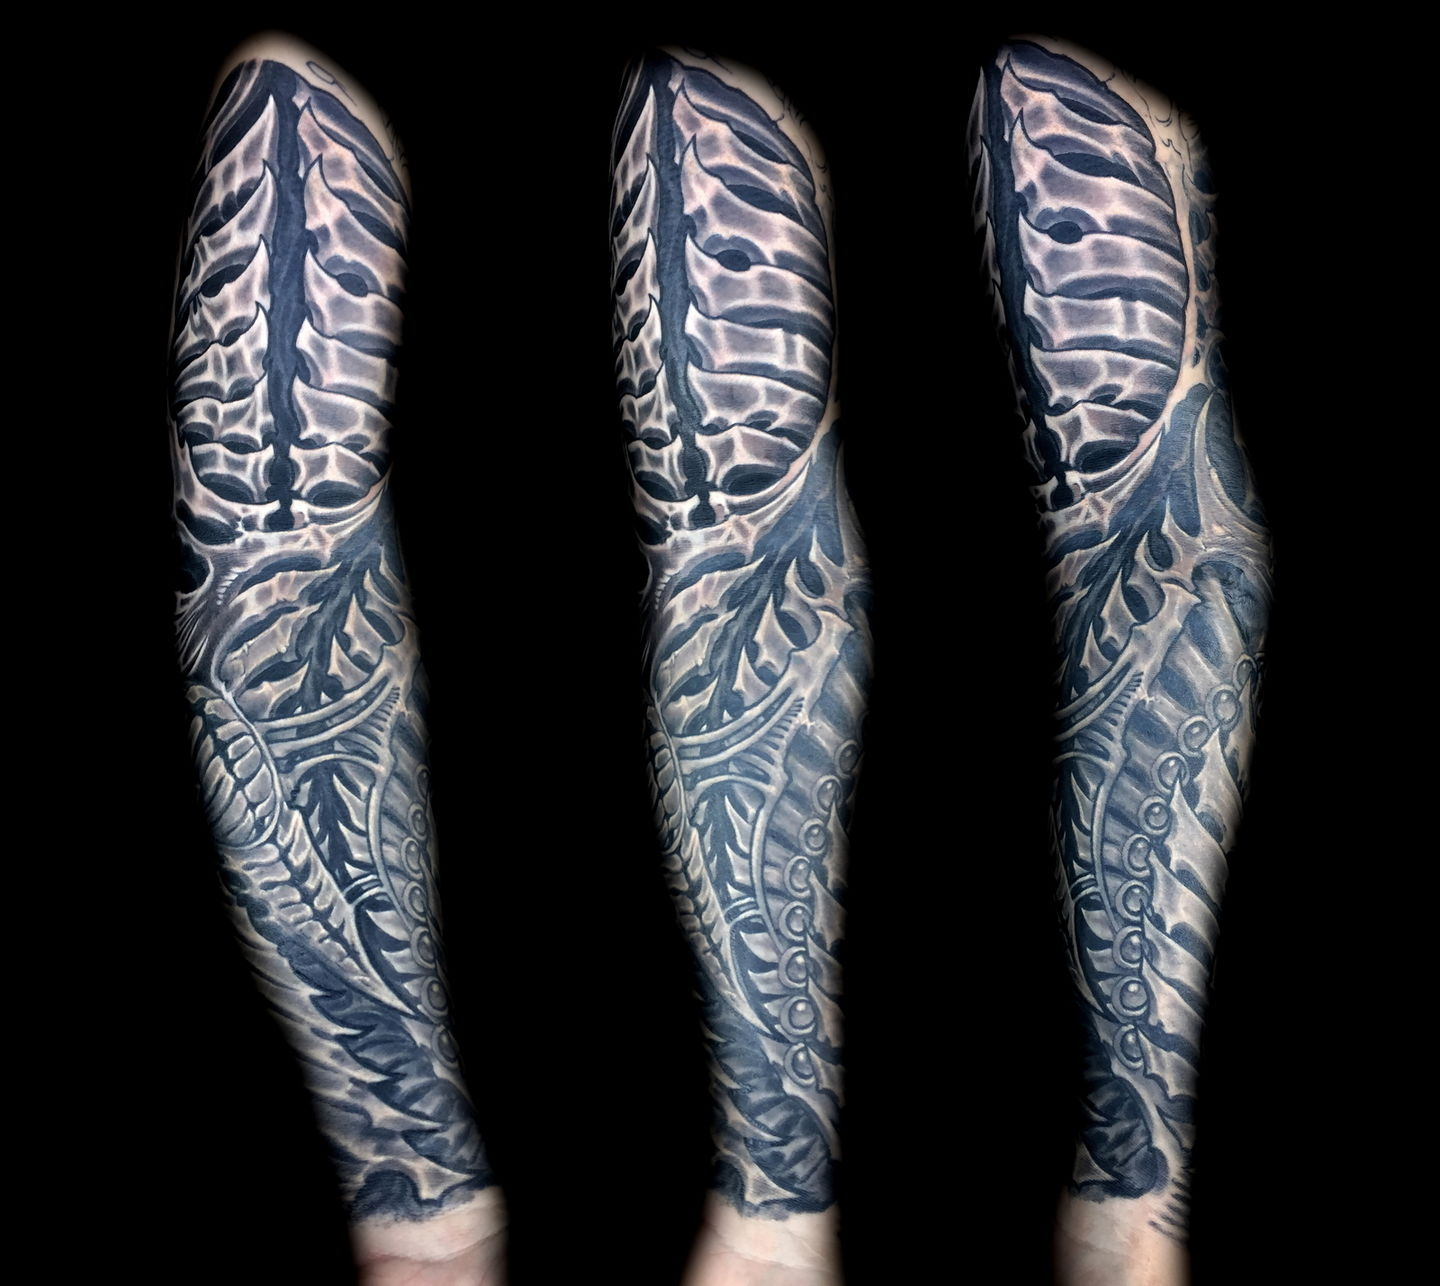 Las-vegas-tattoo-artist_joe-riley_biomech-bone-sleeve